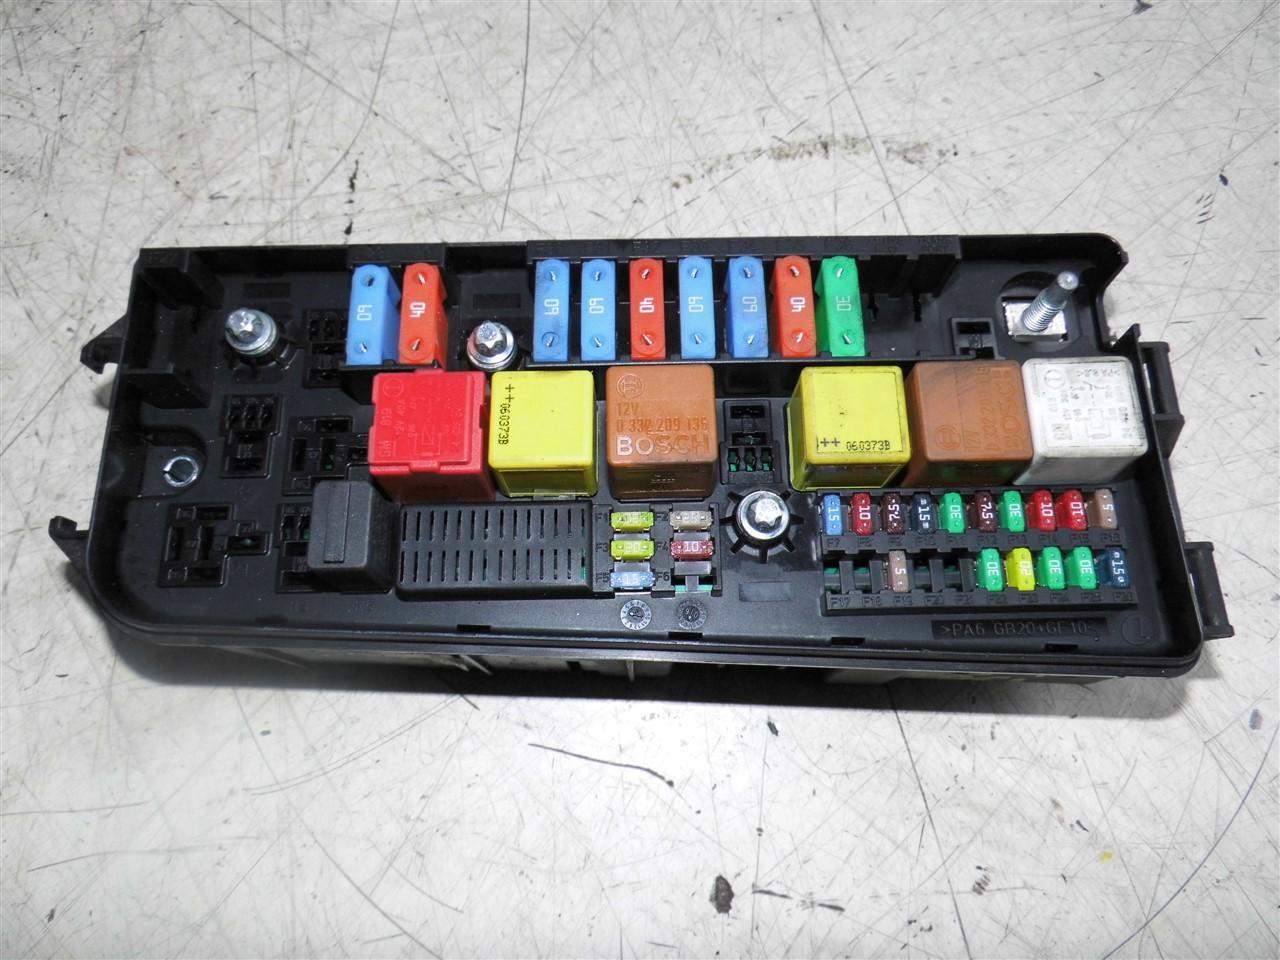 Fuse Box Layout Vauxhall Vectra : D corsa fuse box location free engine image for user